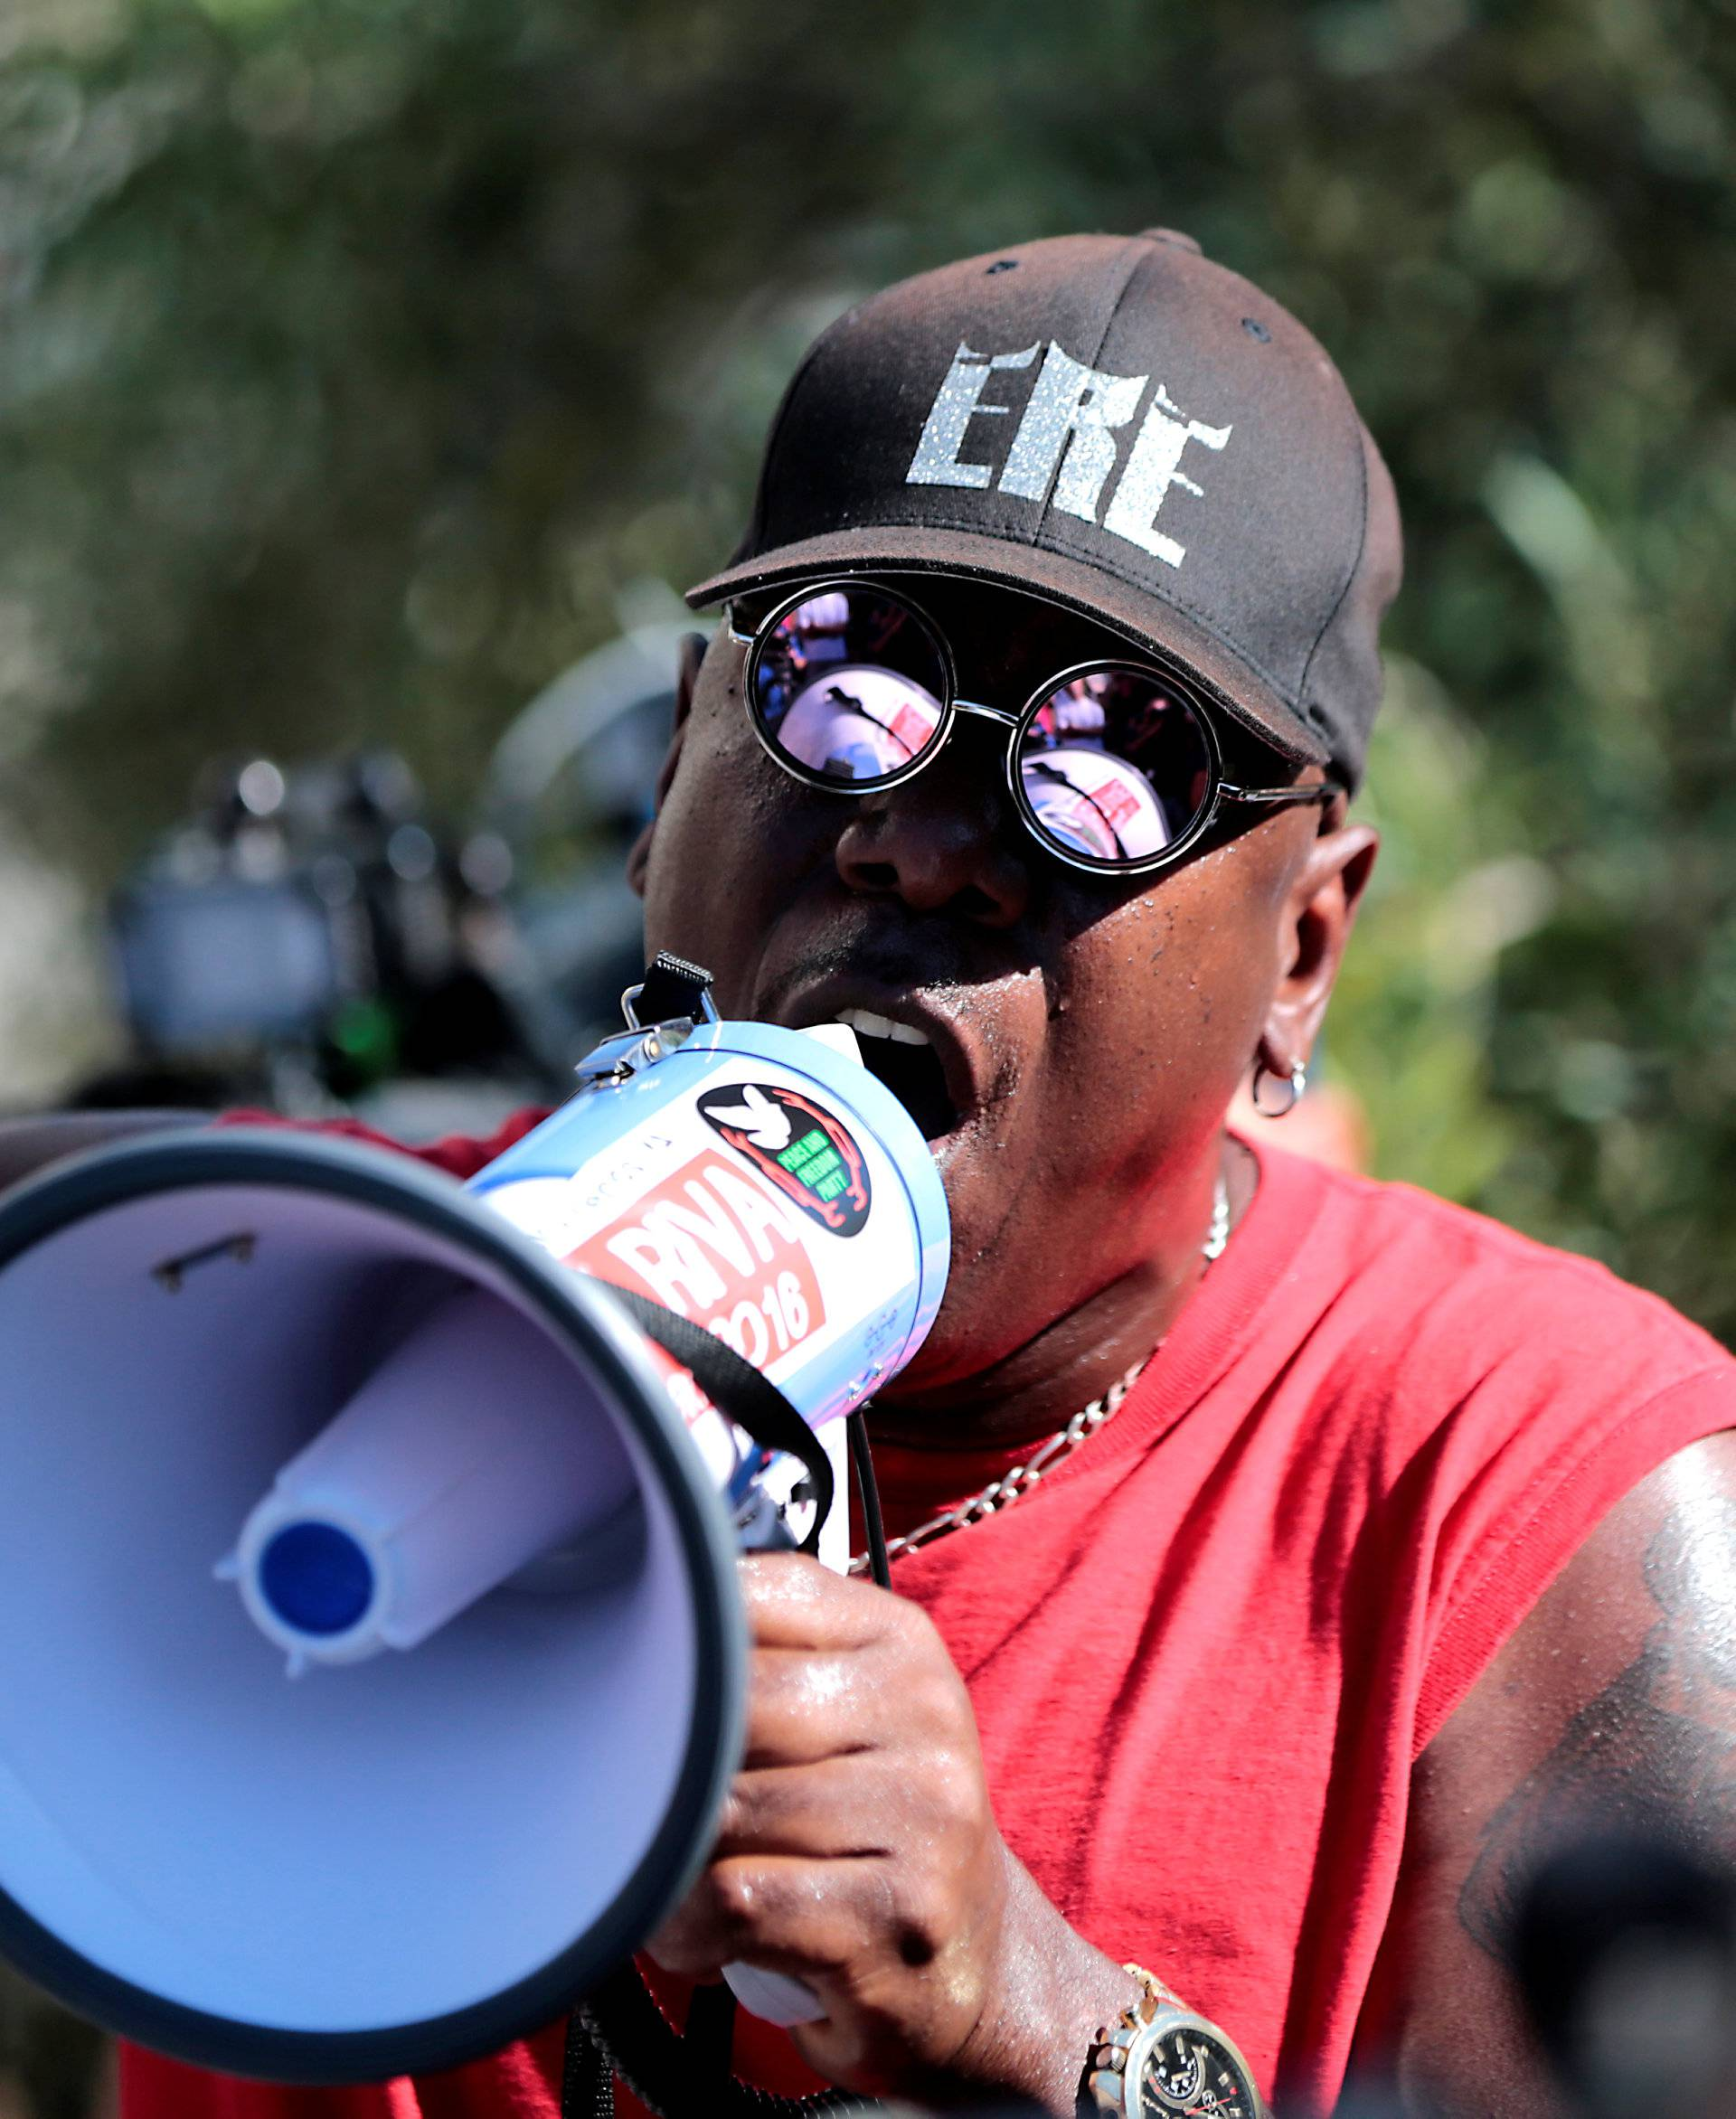 Protesters gather at the El Cajon Police Department headquarters to protest fatal shooting of an unarmed black man Tuesday by officers in El Cajon, California